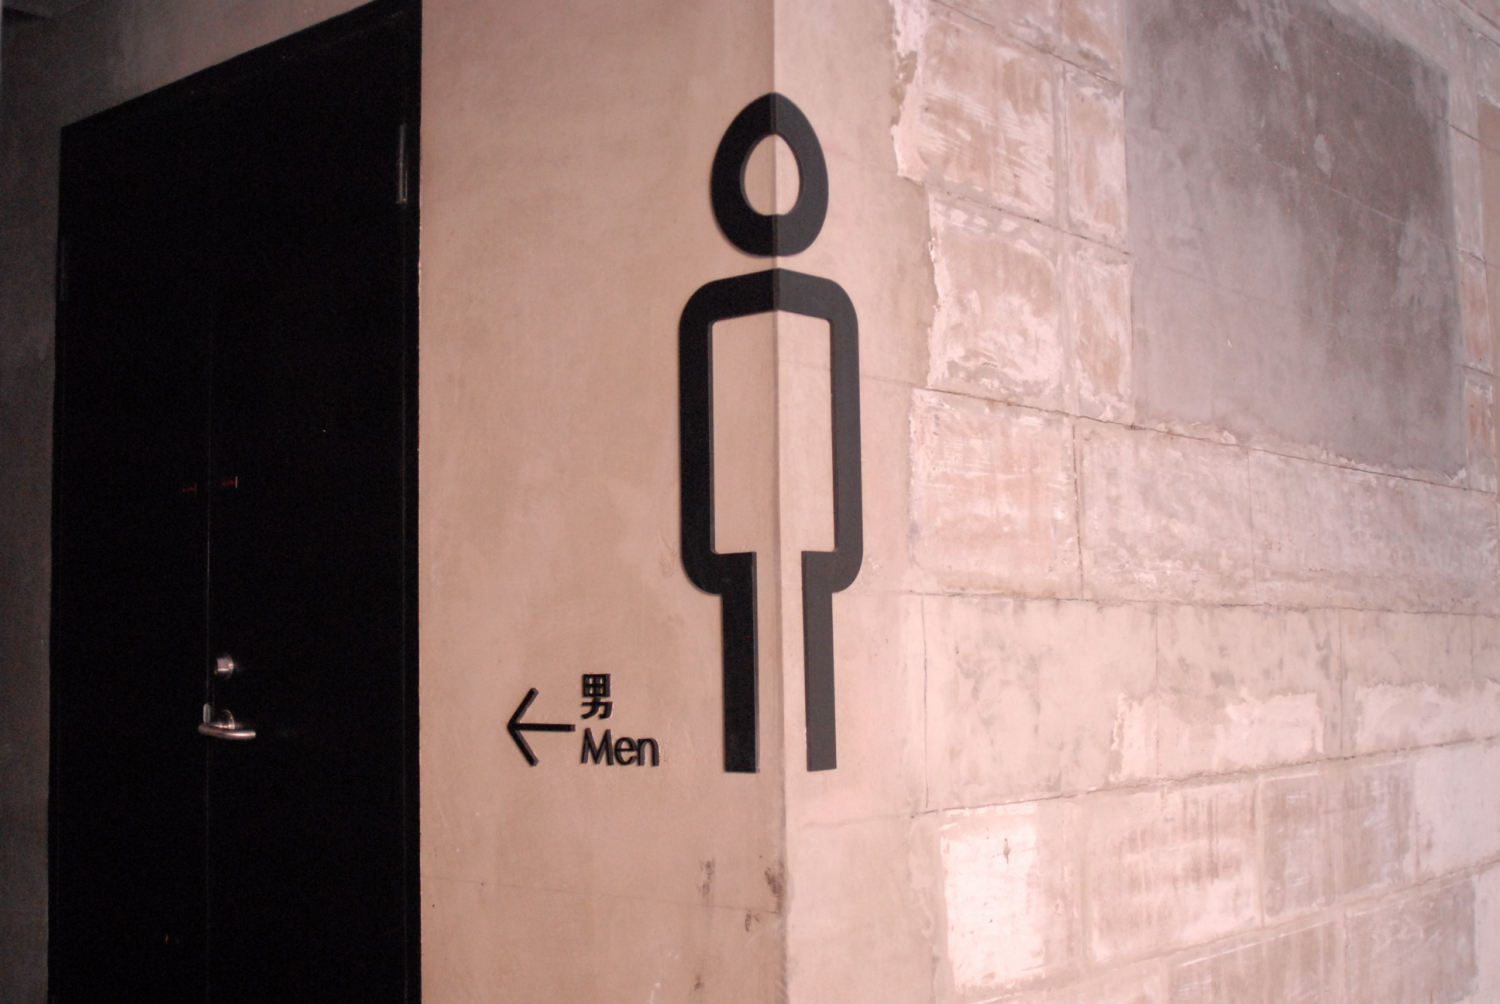 Wc And Restroom Signs Part 1 Smashing Magazine